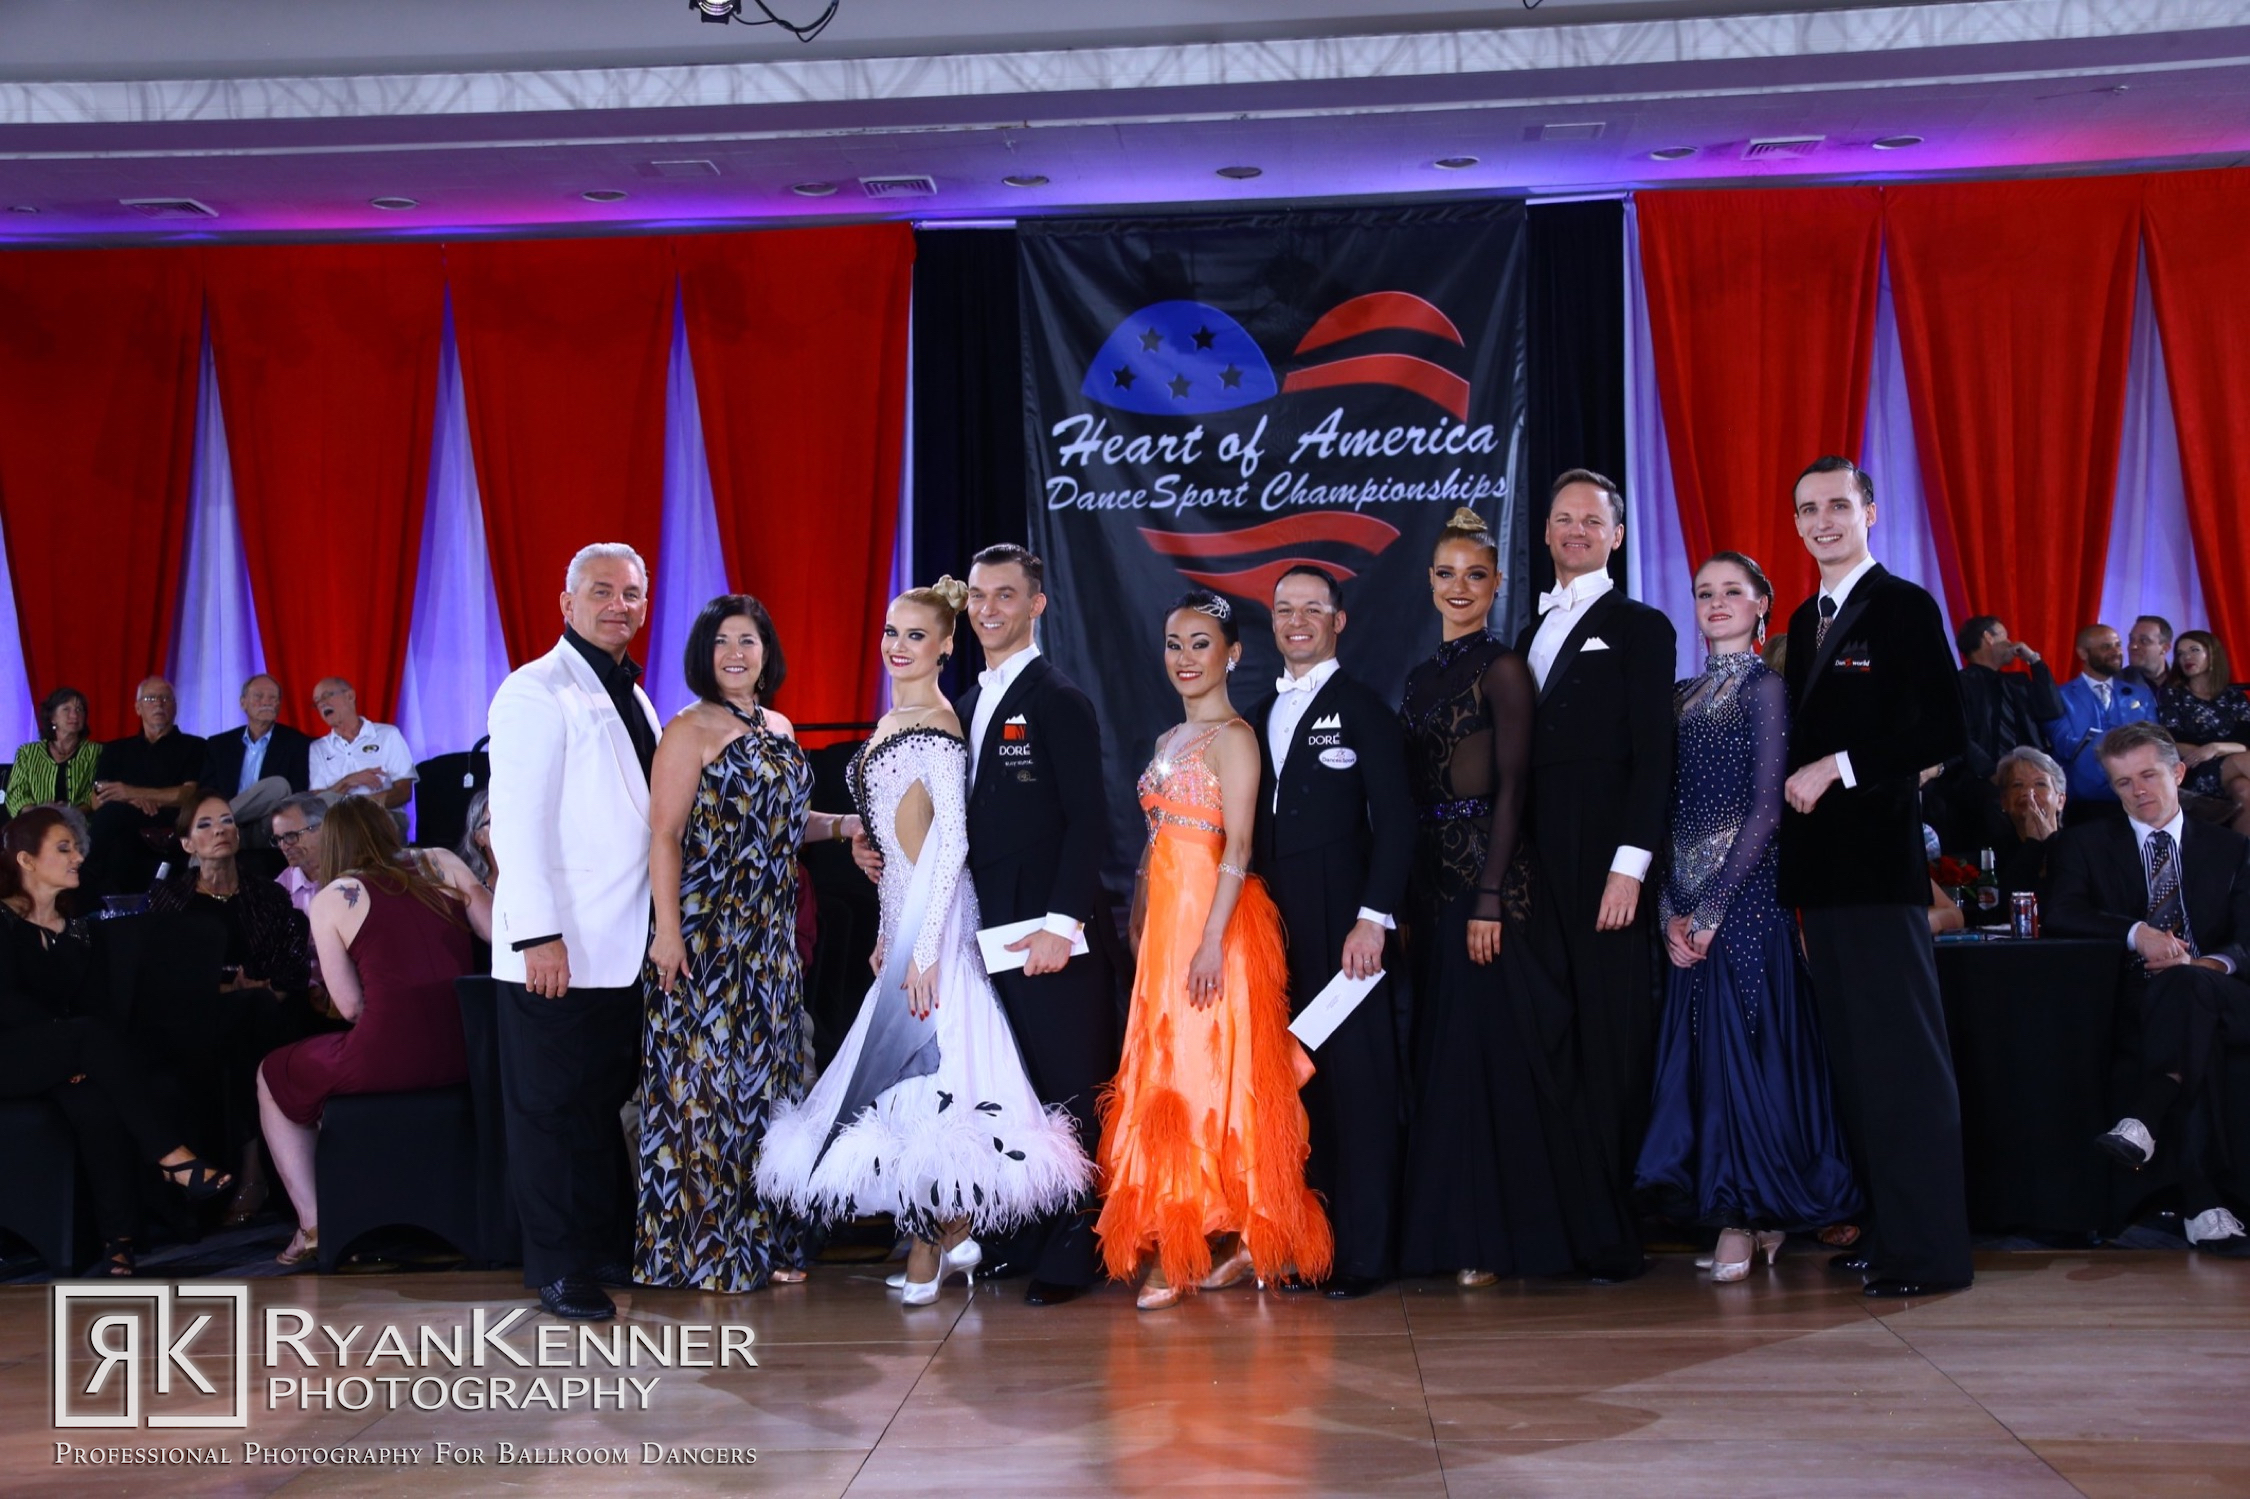 OPEN PROFESSIONAL - INTERNATIONAL BALLROOM - Congratulations to our 2019 champions